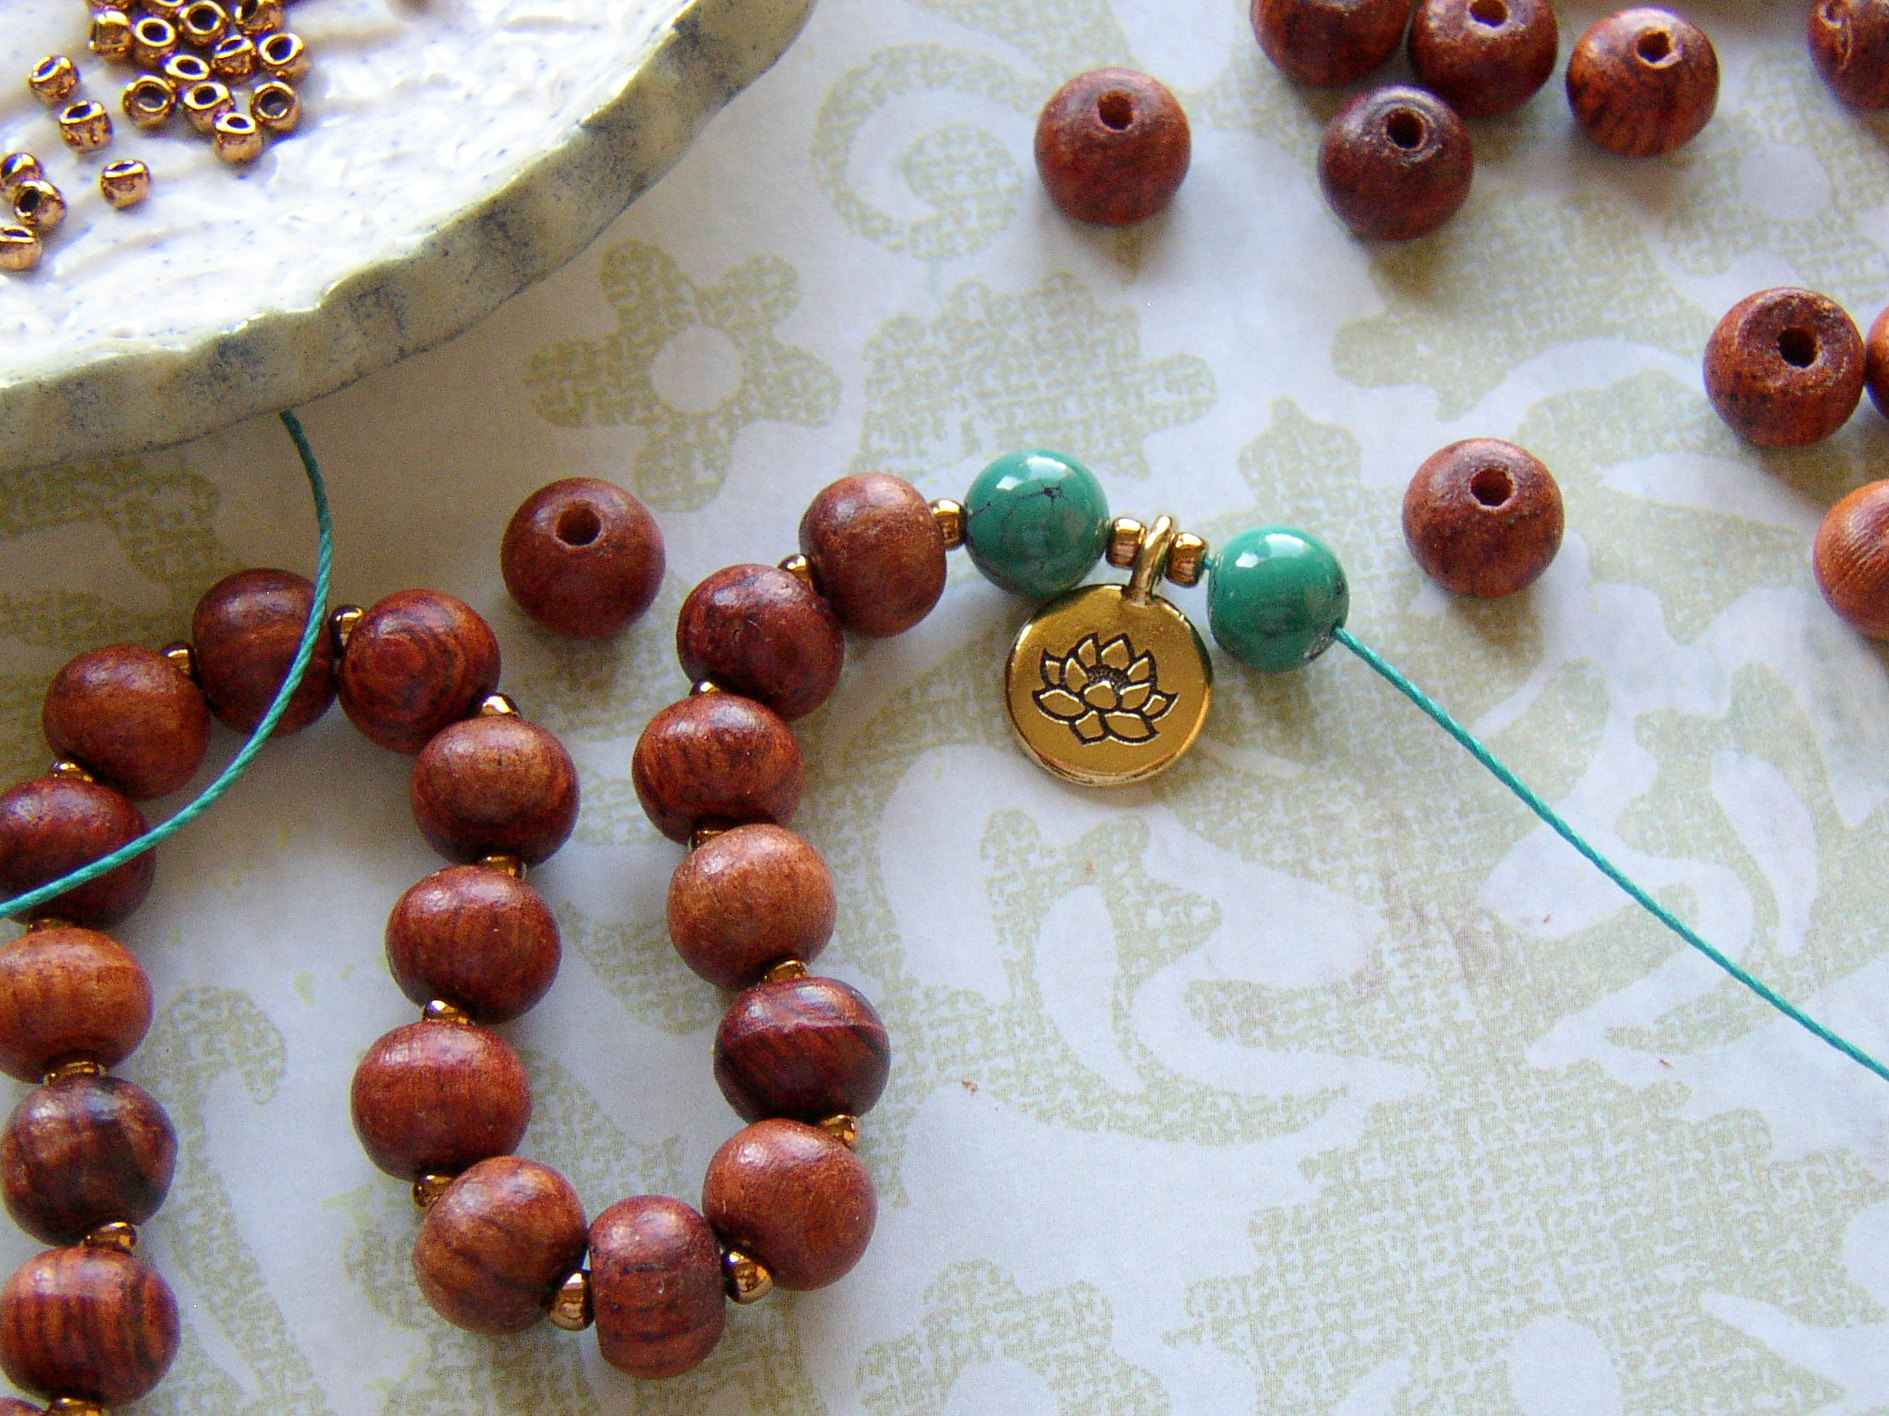 Add a lotus charm at the half-way point for the handstrung Mala.